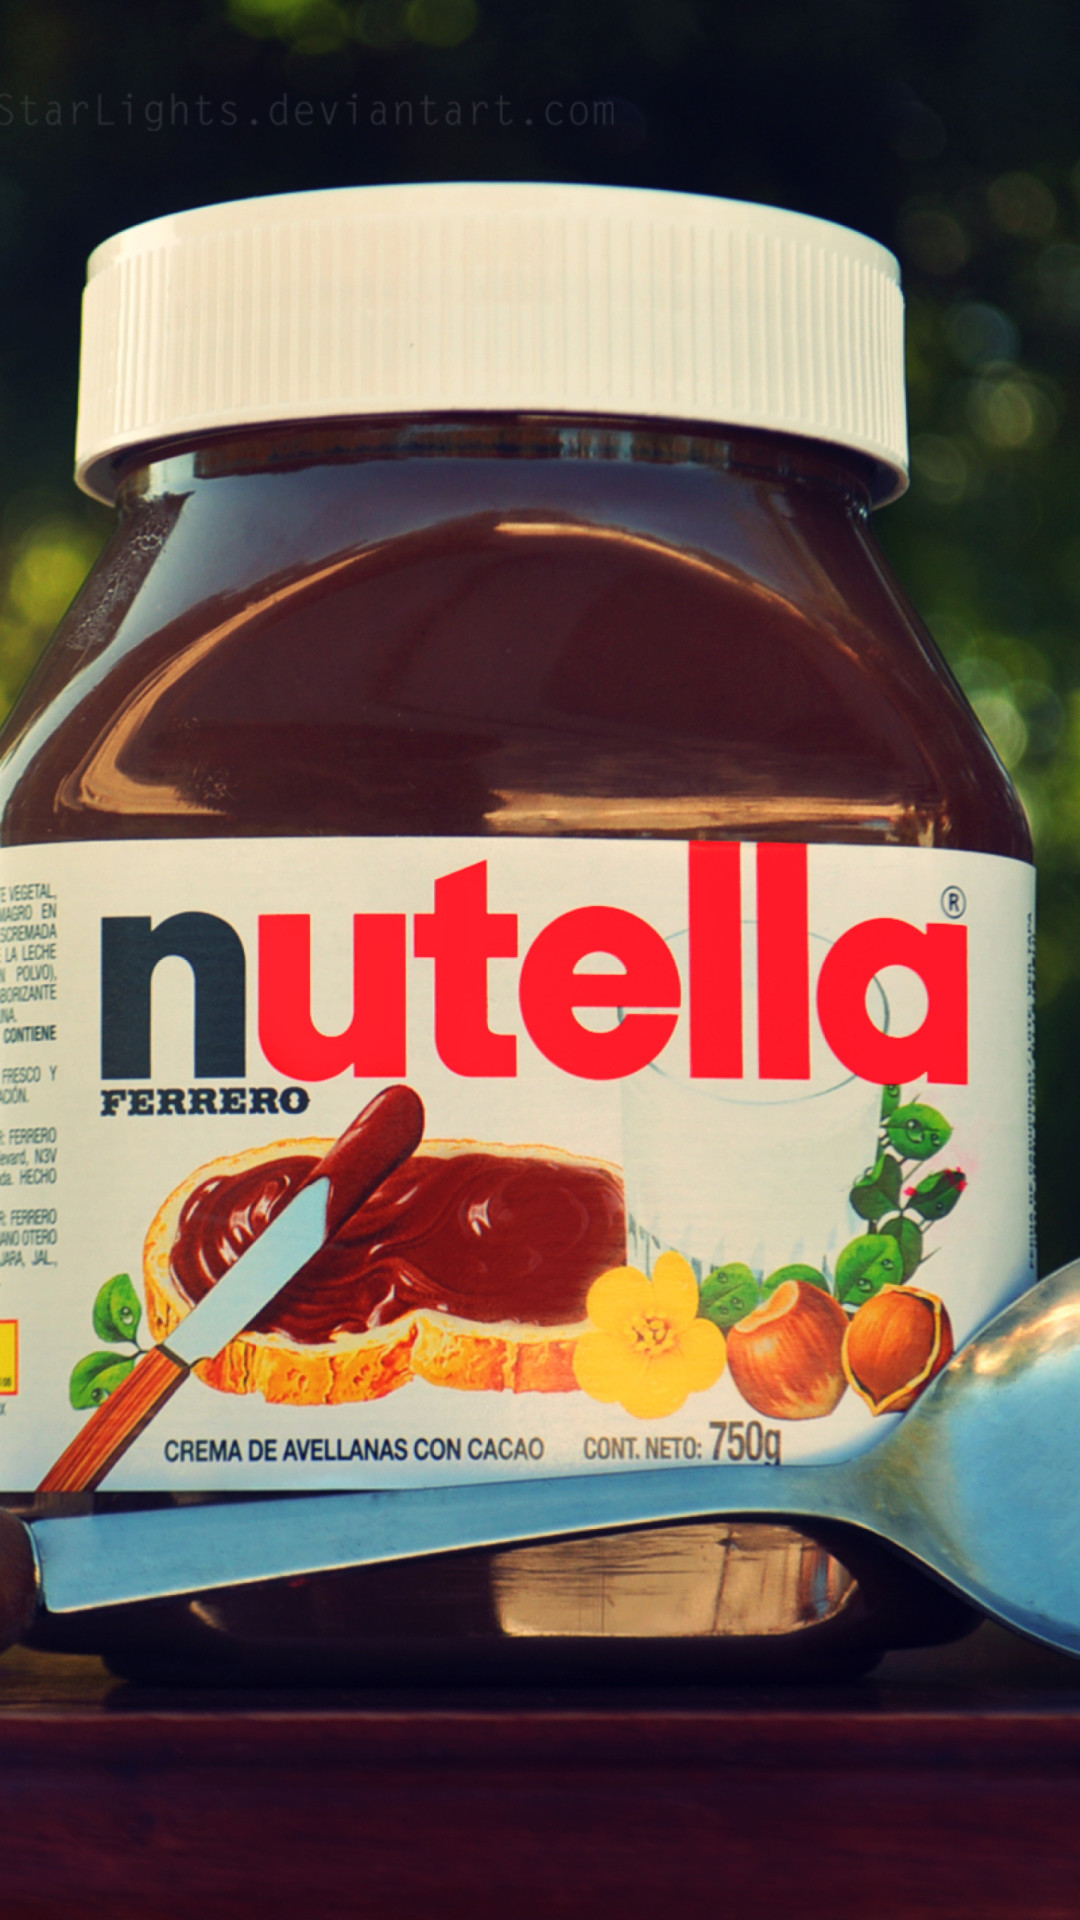 Nutella Wallpapers 183 ① Wallpapertag